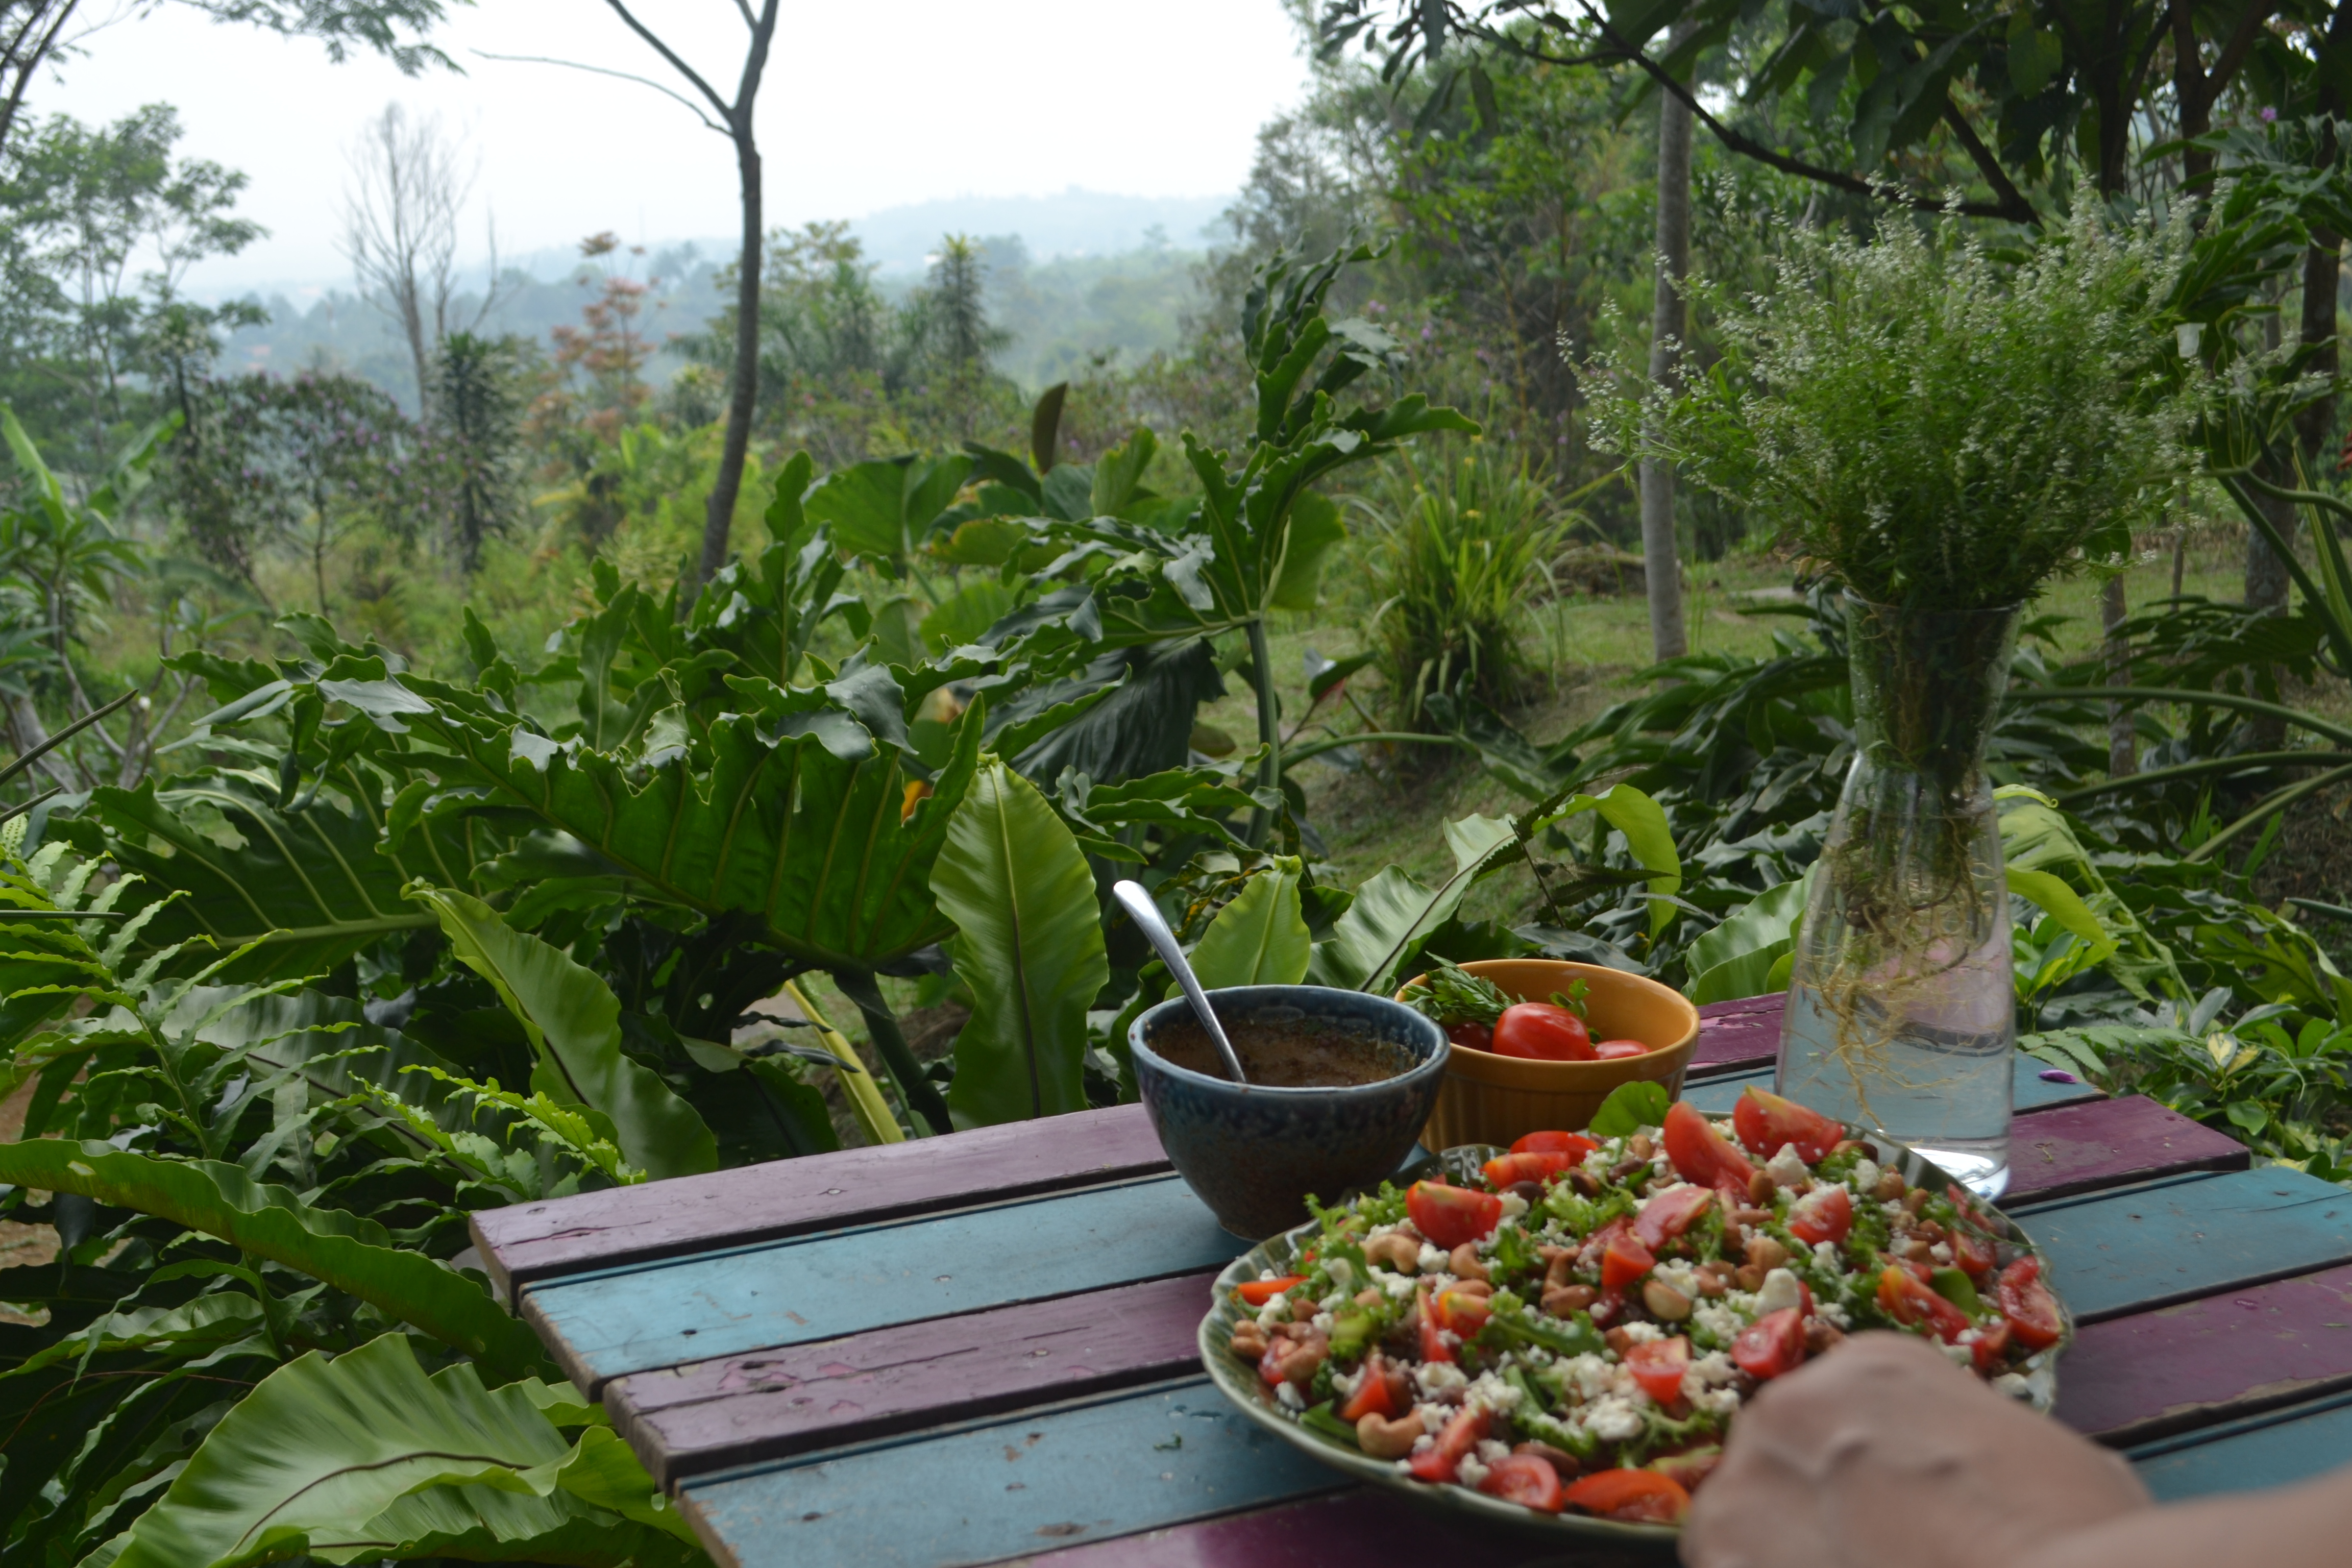 Eating surrounded by nature, what's better than that ?